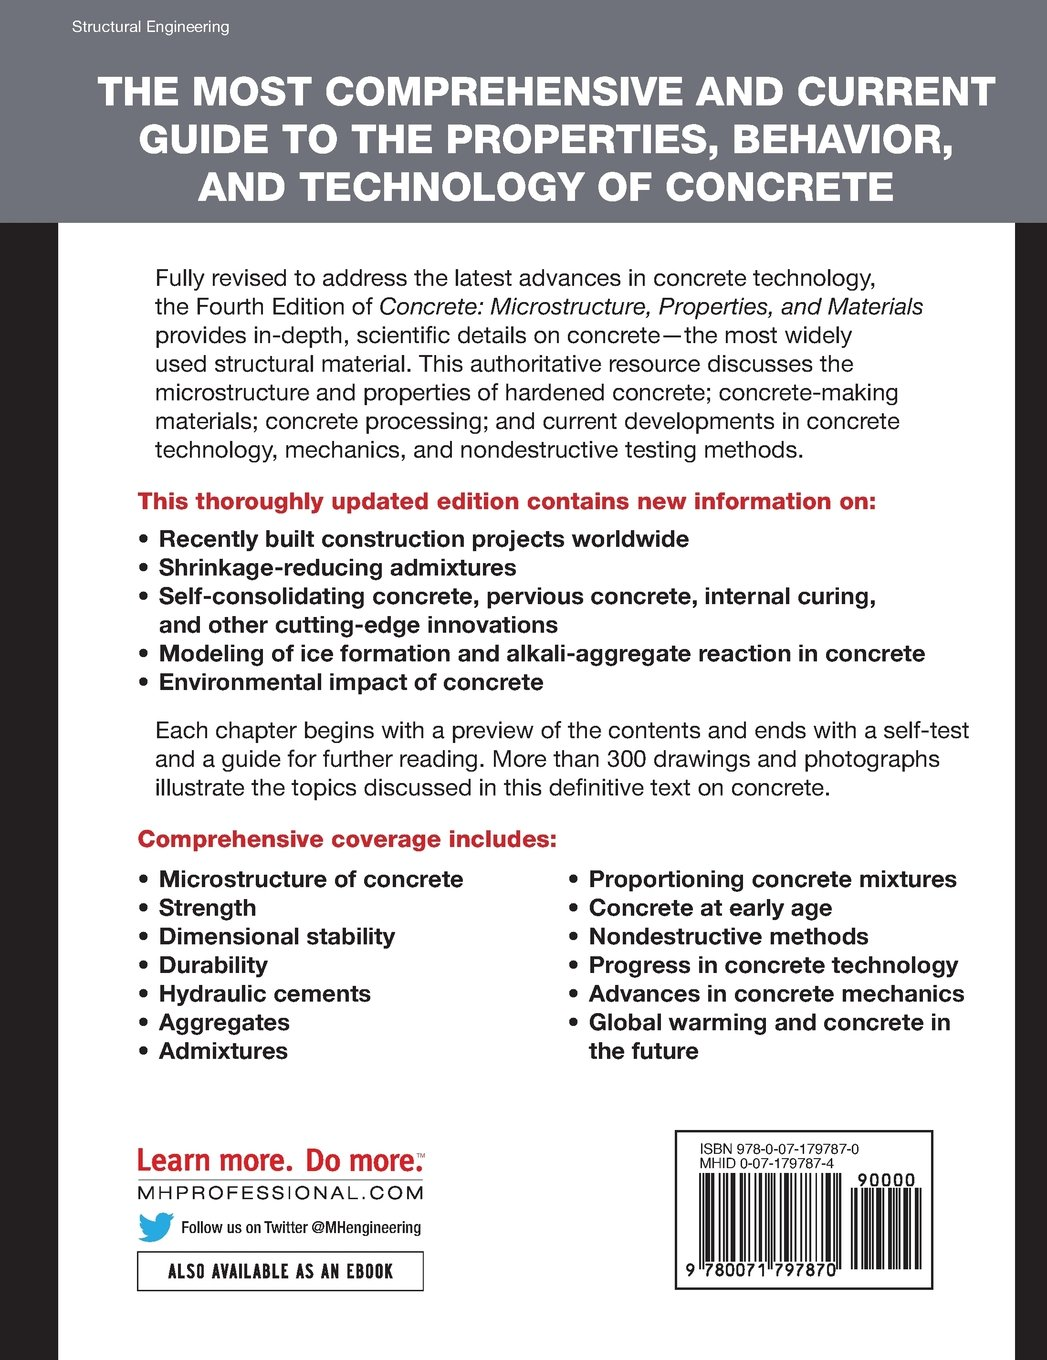 Concrete: Microstructure, Properties, and Materials